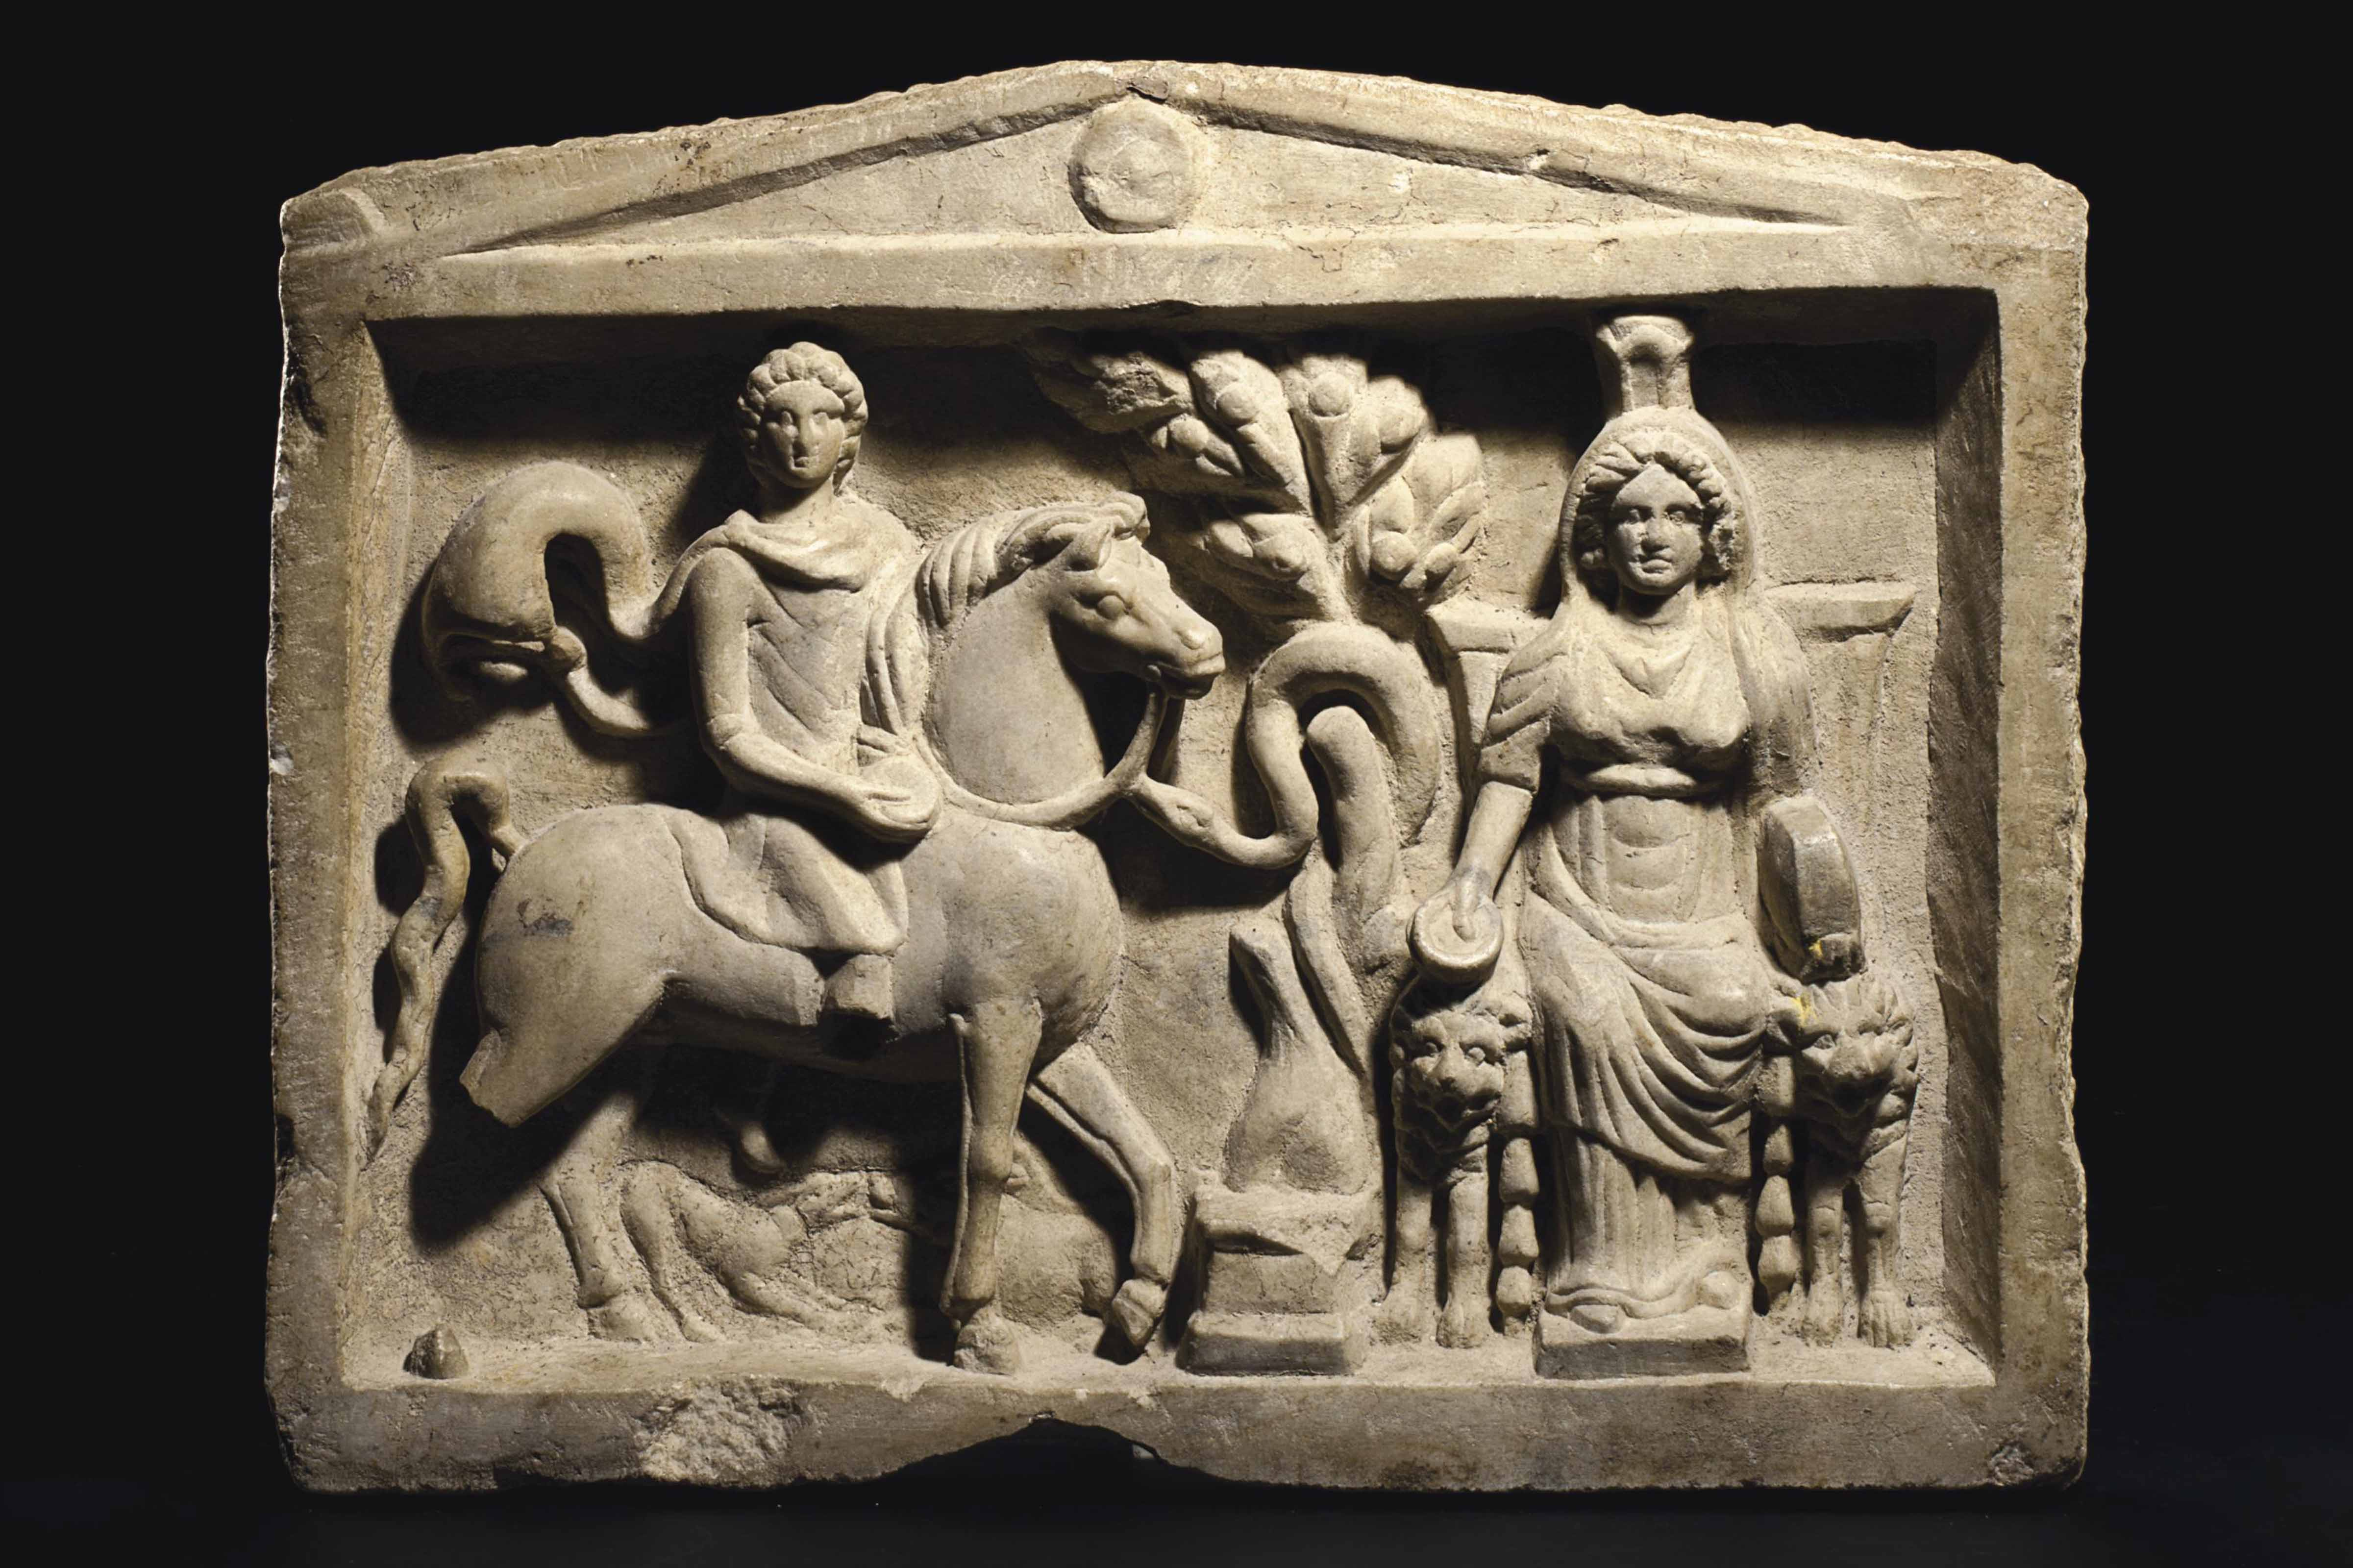 A GREEK MARBLE FUNERARY RELIEF